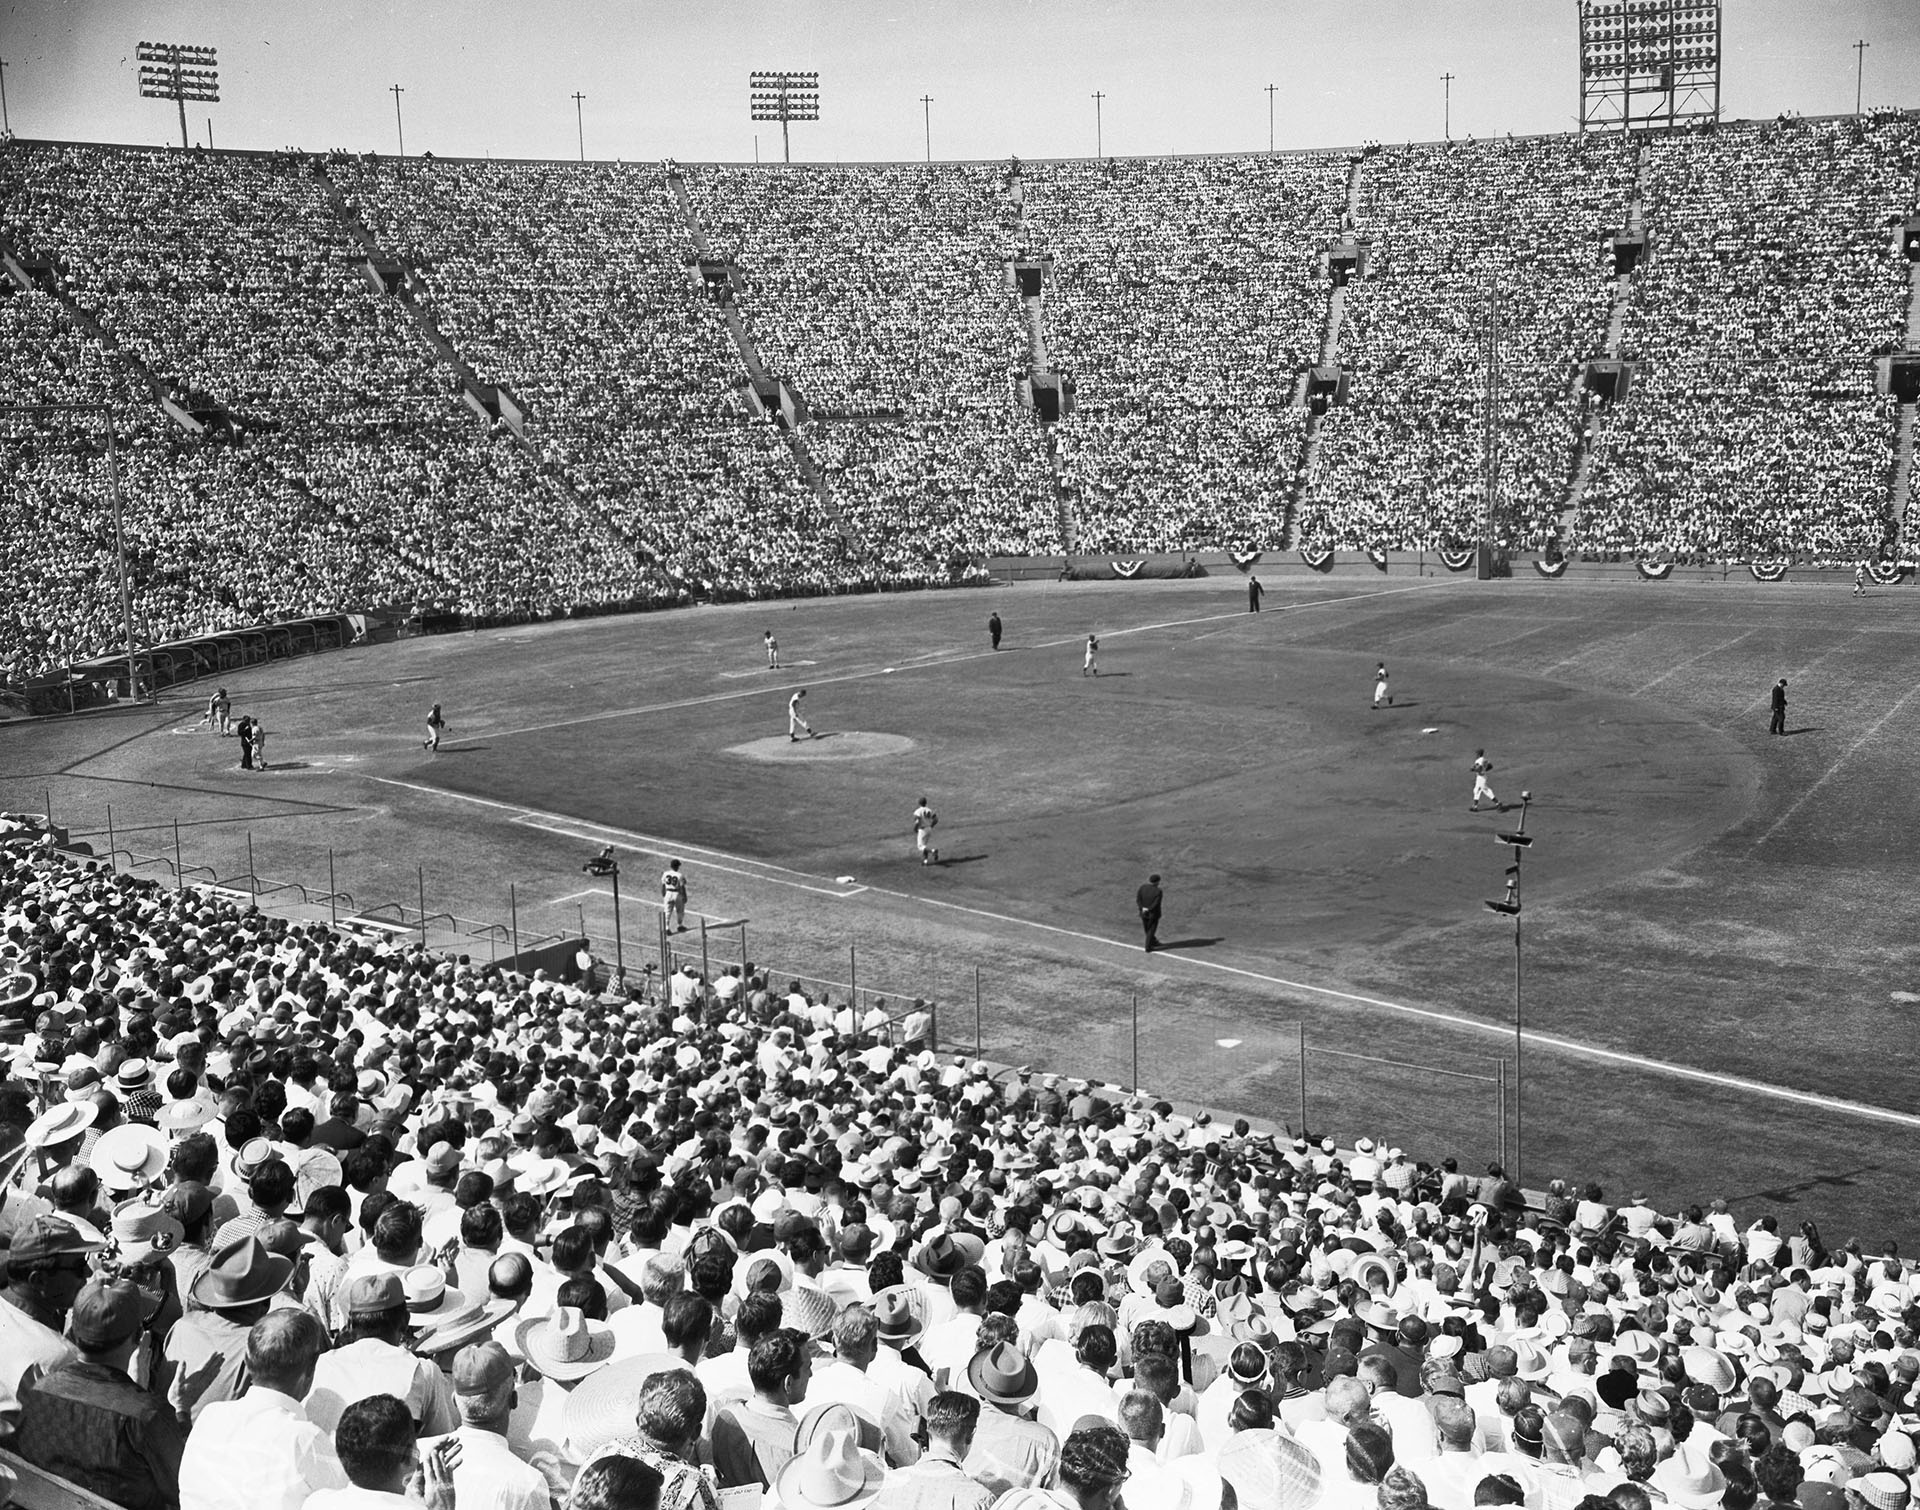 A baseball diamond fit poorly within the confines of the Coliseum